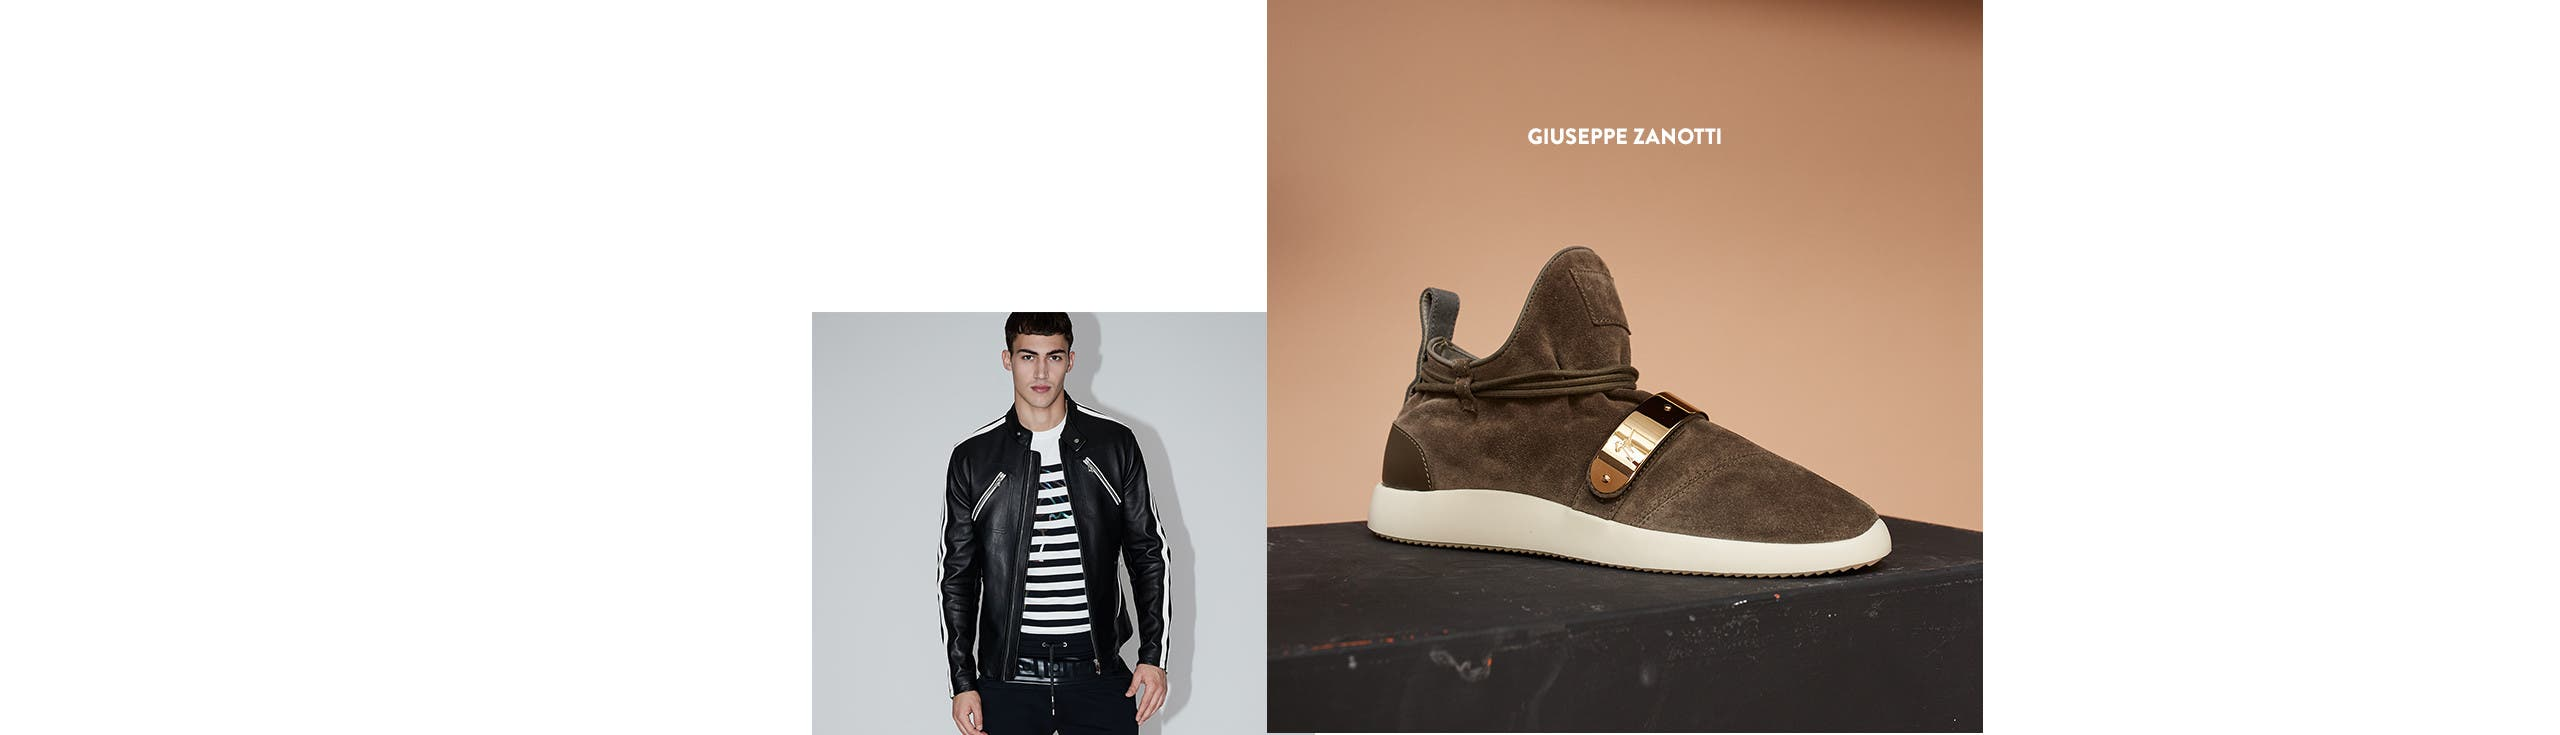 Giuseppe Zanotti shoes for men.